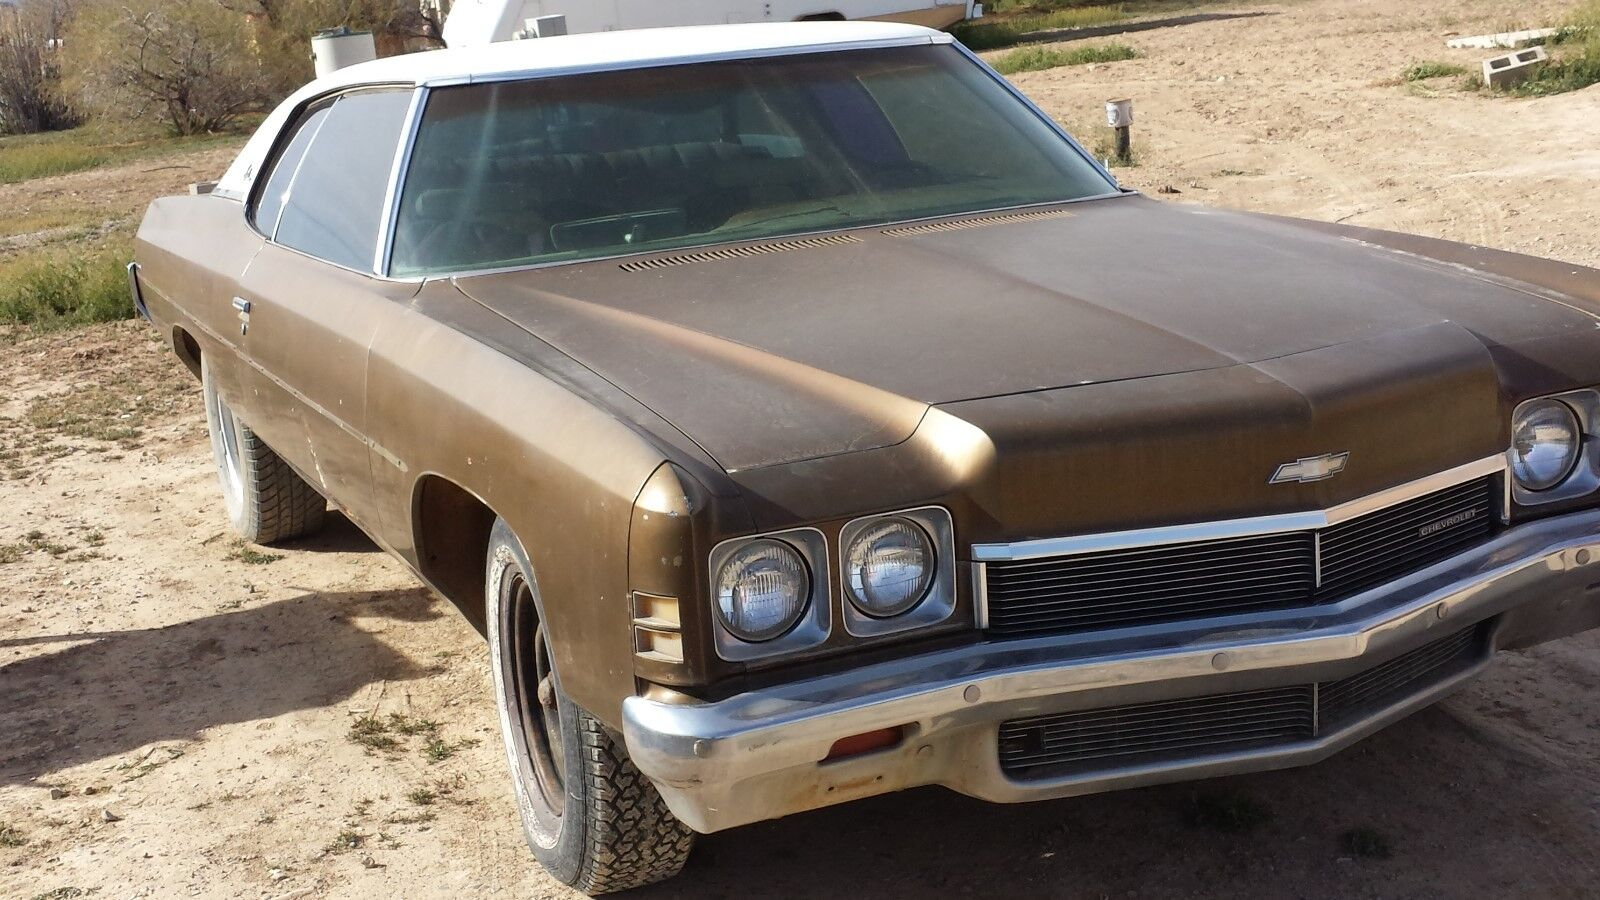 1972 chevy impala used chevrolet impala for sale in pahrump nevada. Black Bedroom Furniture Sets. Home Design Ideas